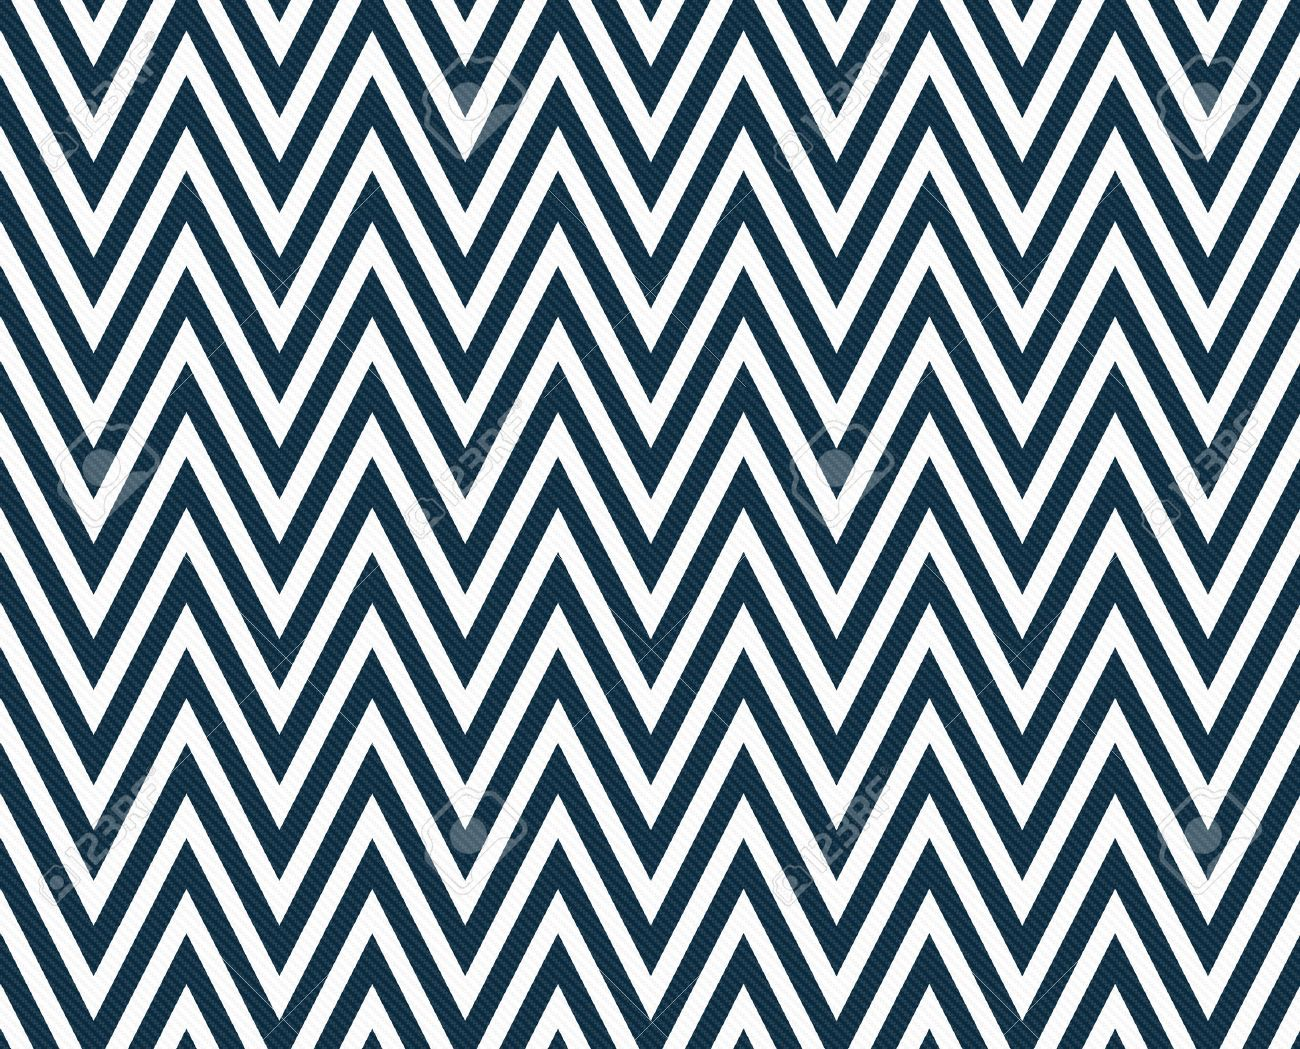 Thin Navy Blue And White Horizontal Chevron Striped Textured ...